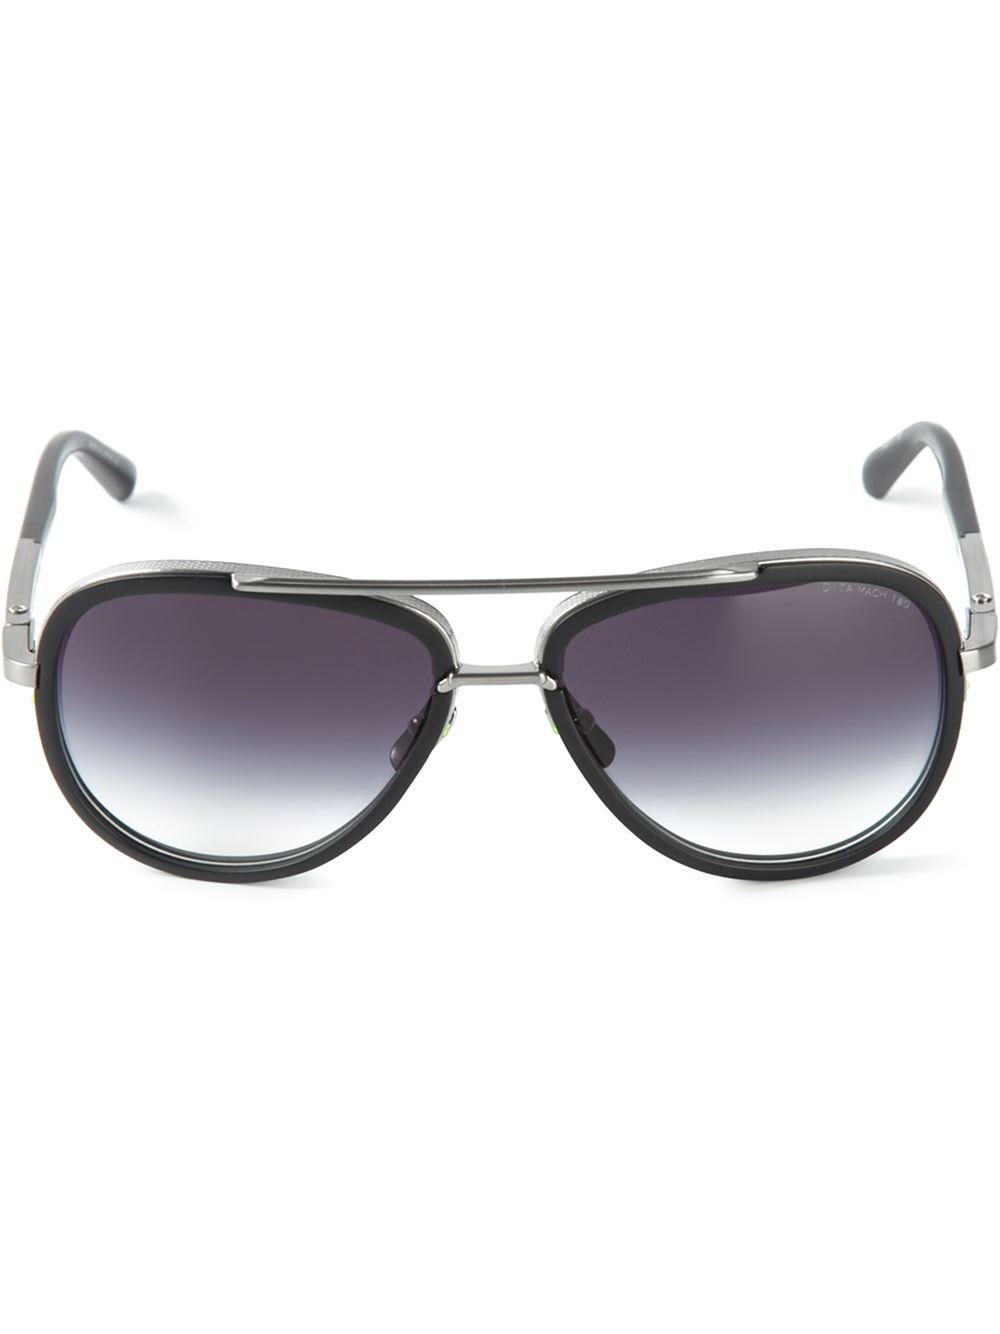 Dita eyewear 'Match Two' Sunglasses in Black | Lyst Dita Eyewear